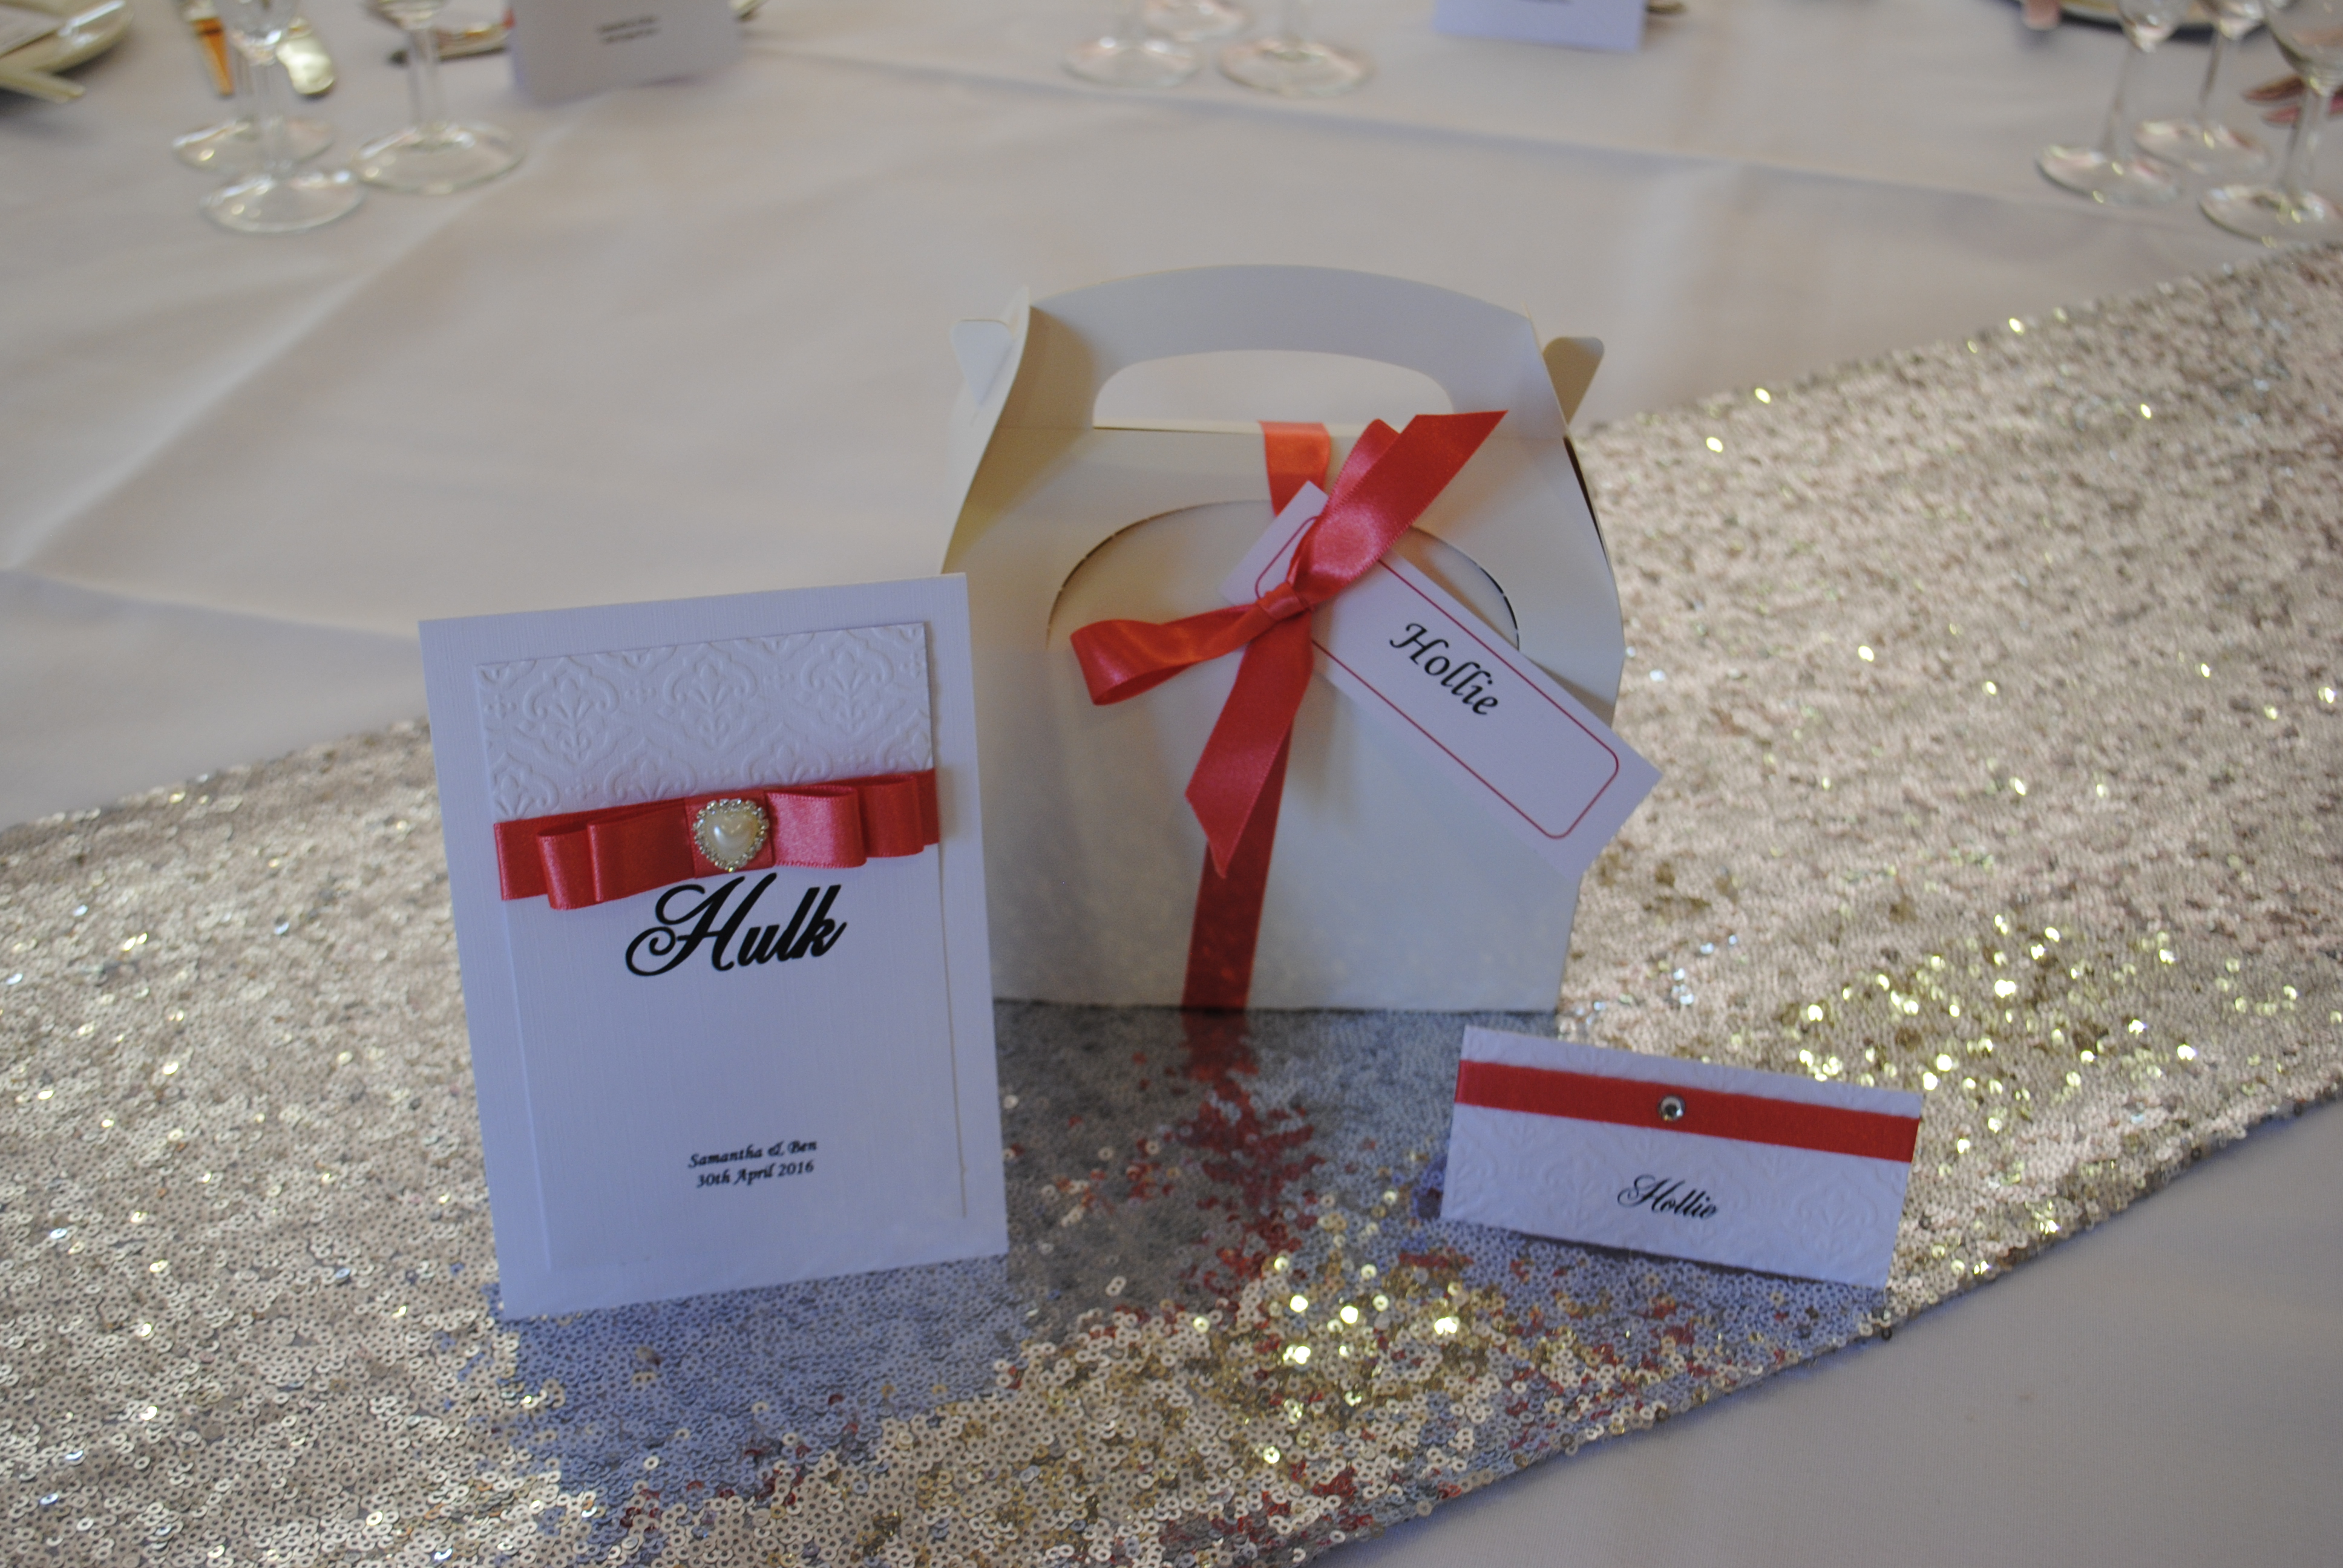 Dior Bow Table Number & Name Card